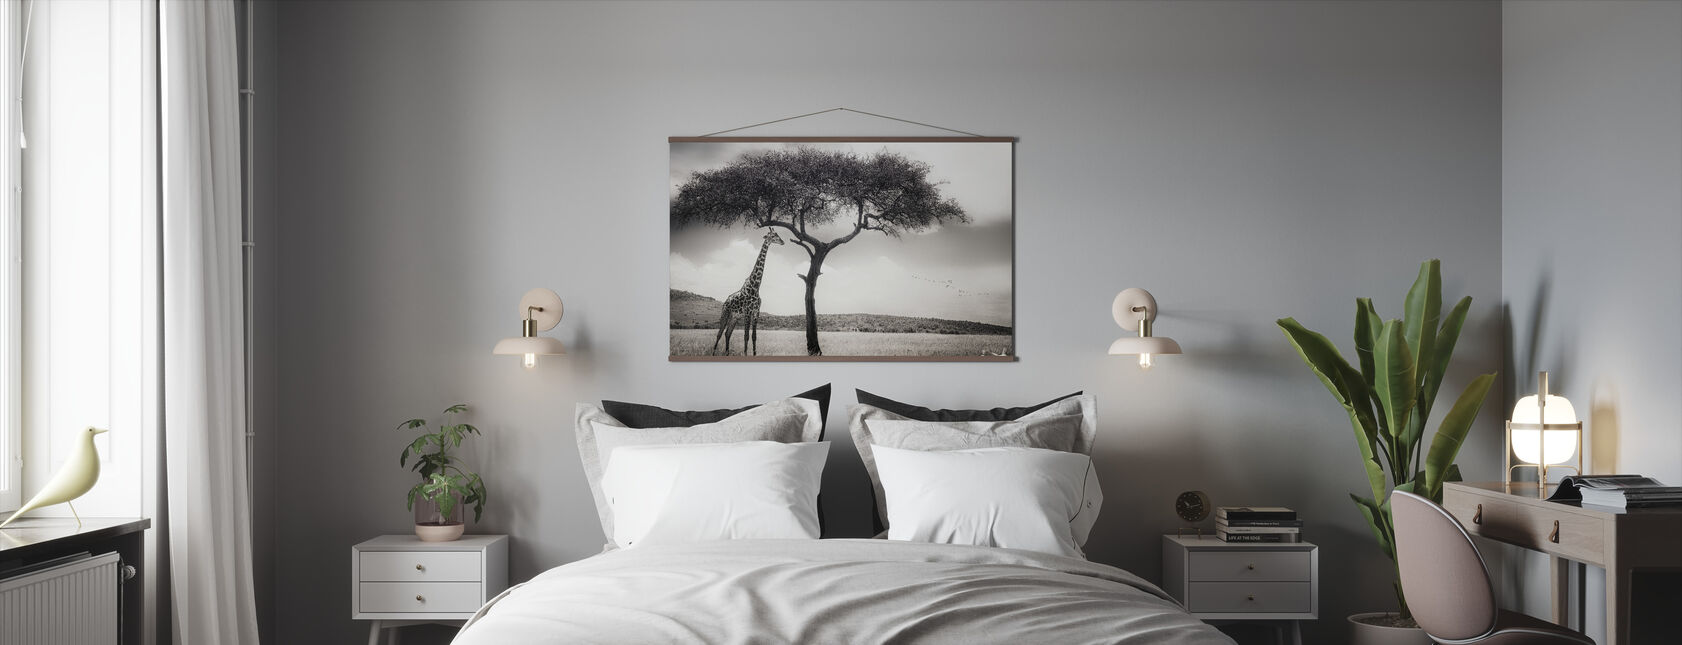 Under the African Sun - Poster - Bedroom